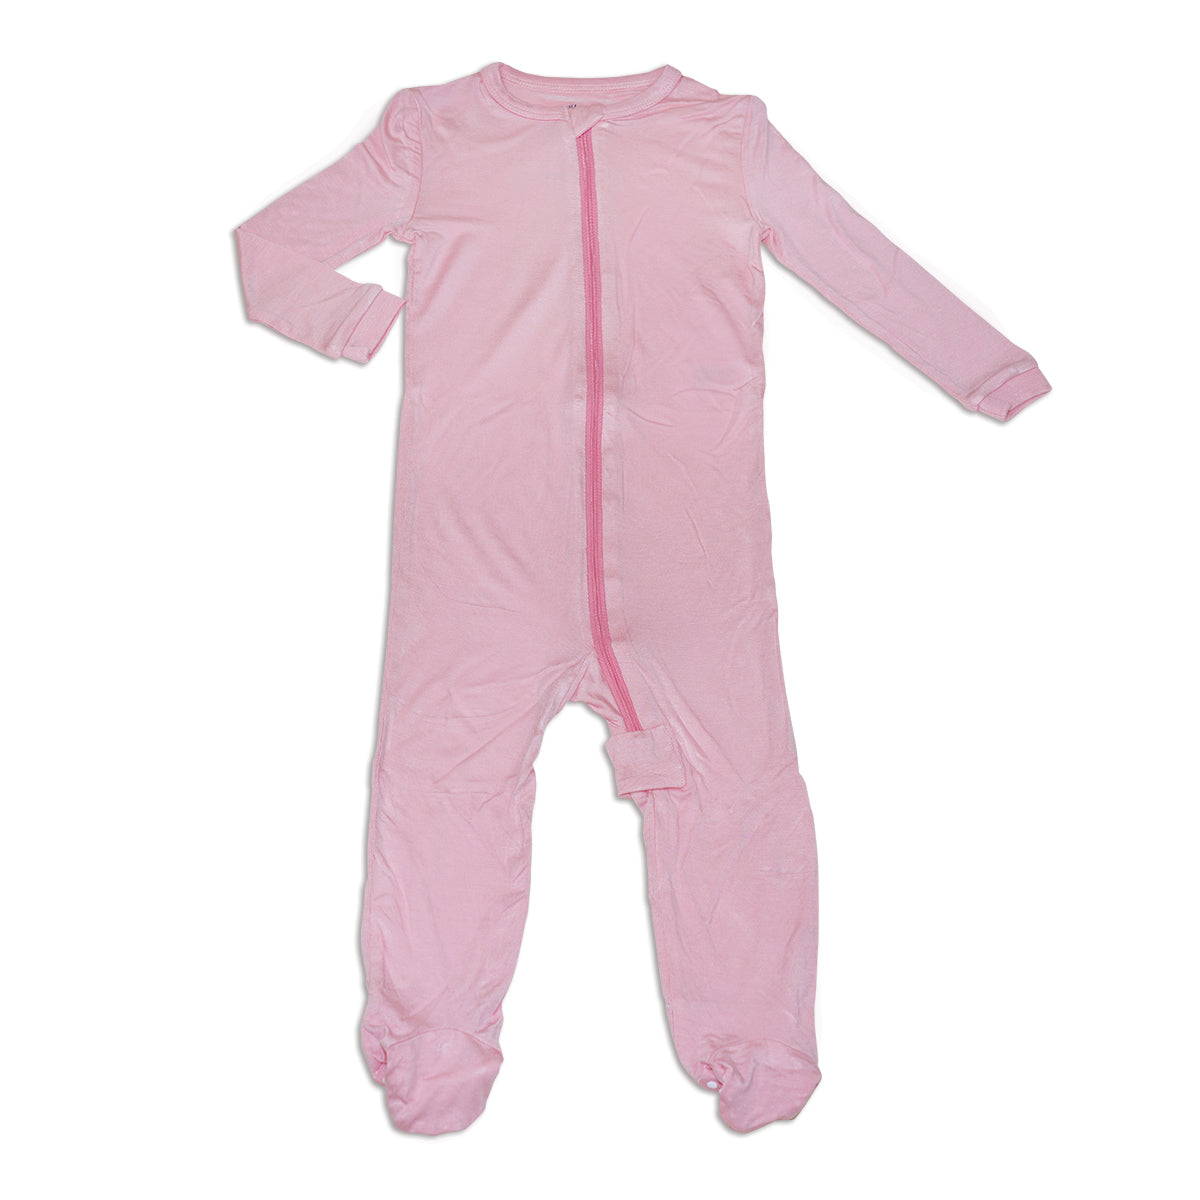 Bamboo Zip up Footed Sleeper (Jellyfish)